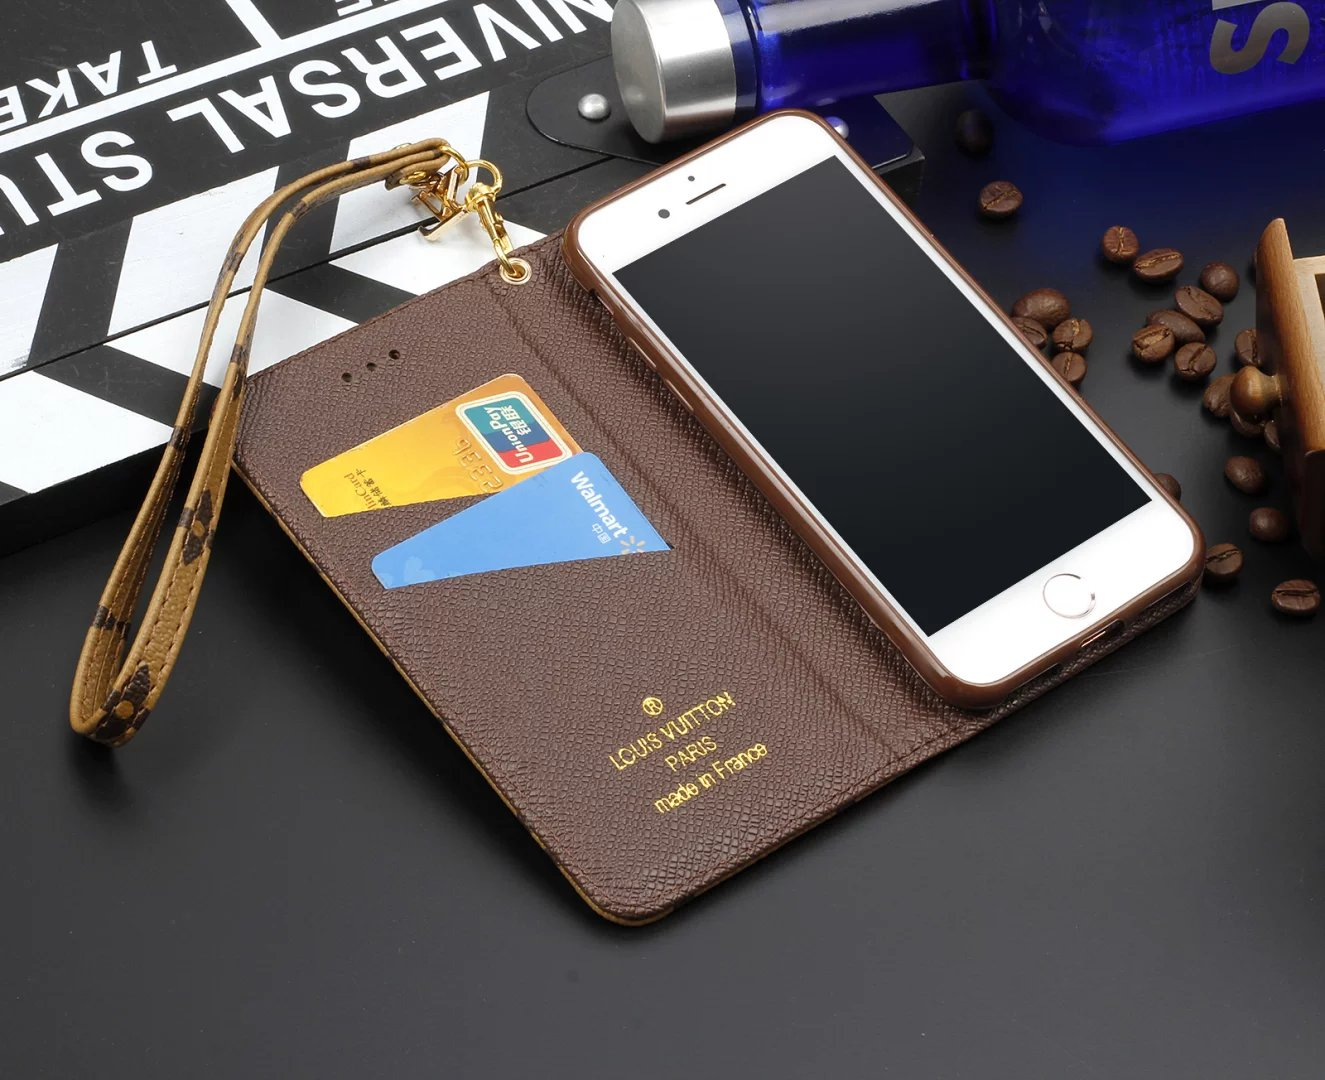 iphone 8 with cover cell phone cases iphone 8 case Louis Vuitton iphone 8 case latest phone cases good phone cases for iphone 8 white iphone 8 case top cases for iphone 8 best iphone 8 case brands elite 661 plus